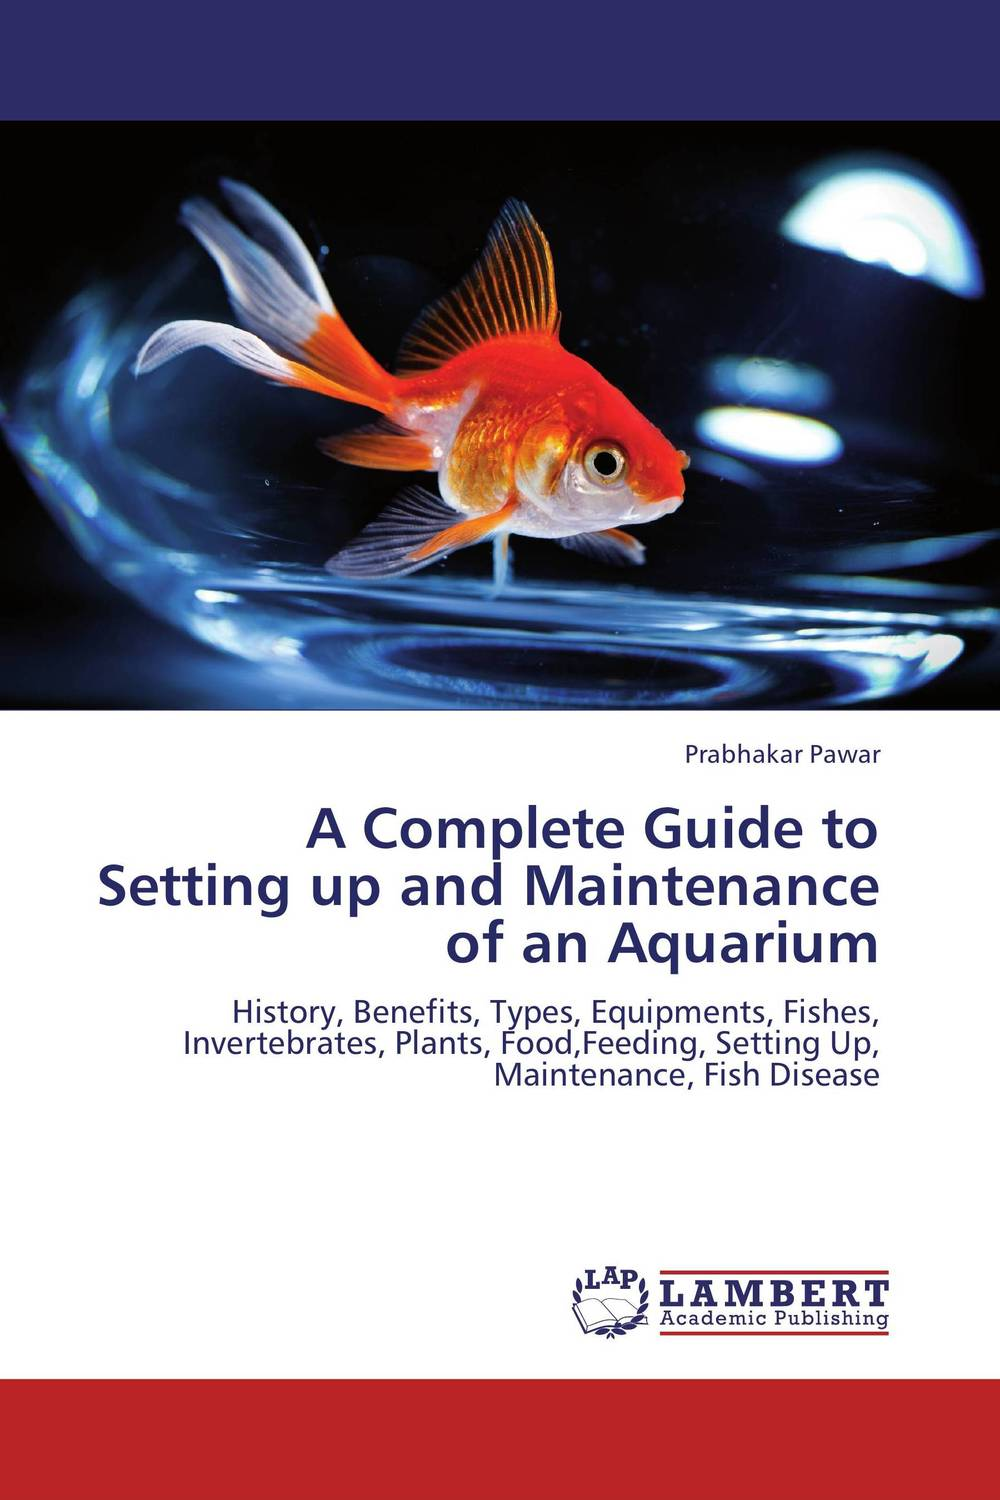 A Complete Guide to Setting up and Maintenance of an Aquarium why shrinkwrap a cucumber the complete guide to environmental packaging